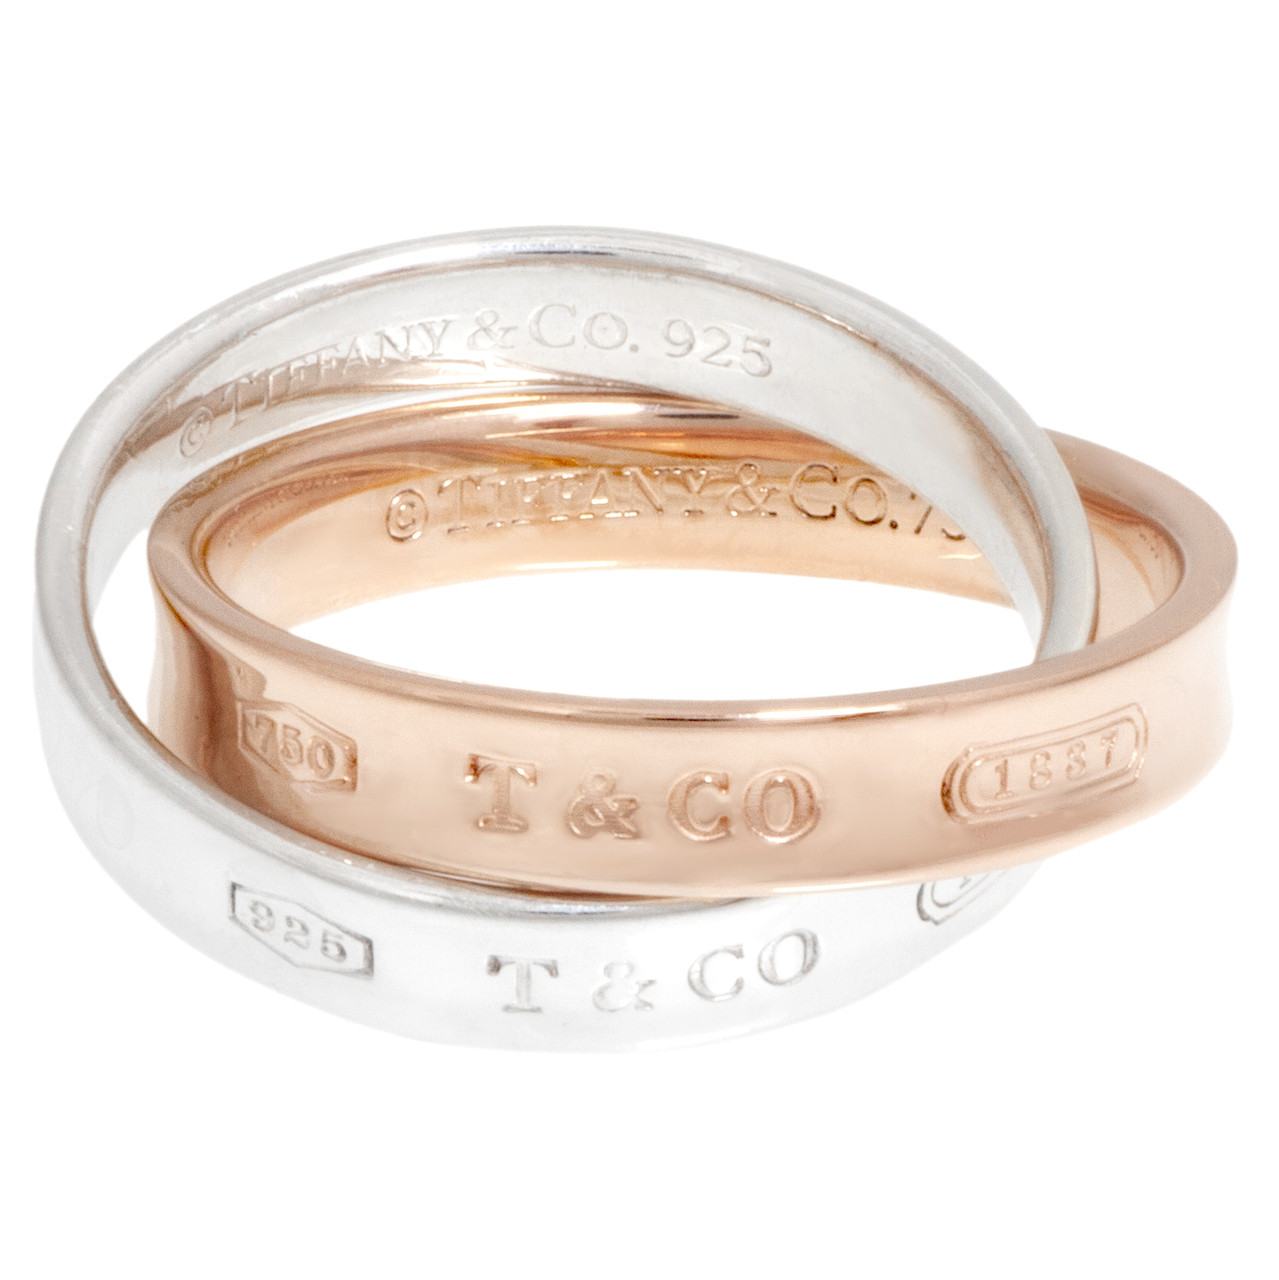 ea6efa7d1 Tiffany & Co. 18K Rose Gold & Sterling Silver Interlocking Circles ...